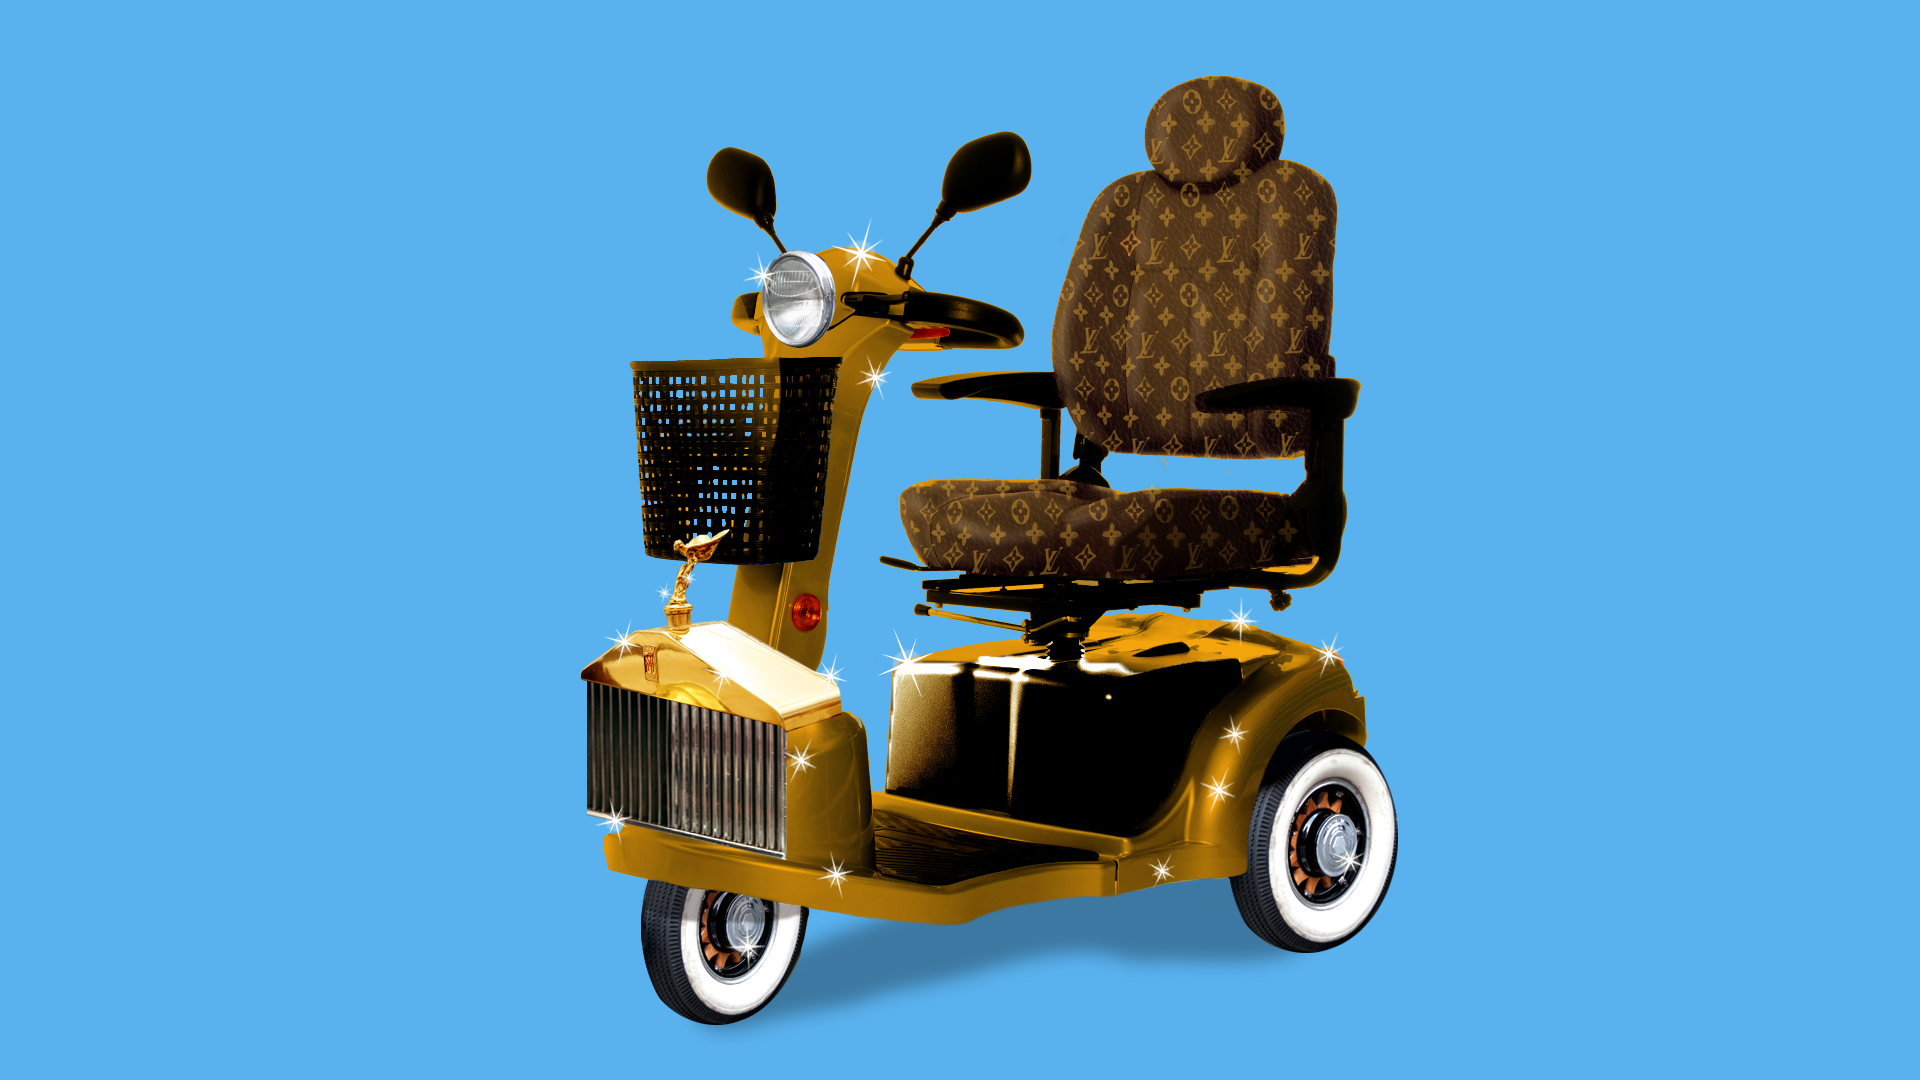 An illustration depicting a gold wheelchair